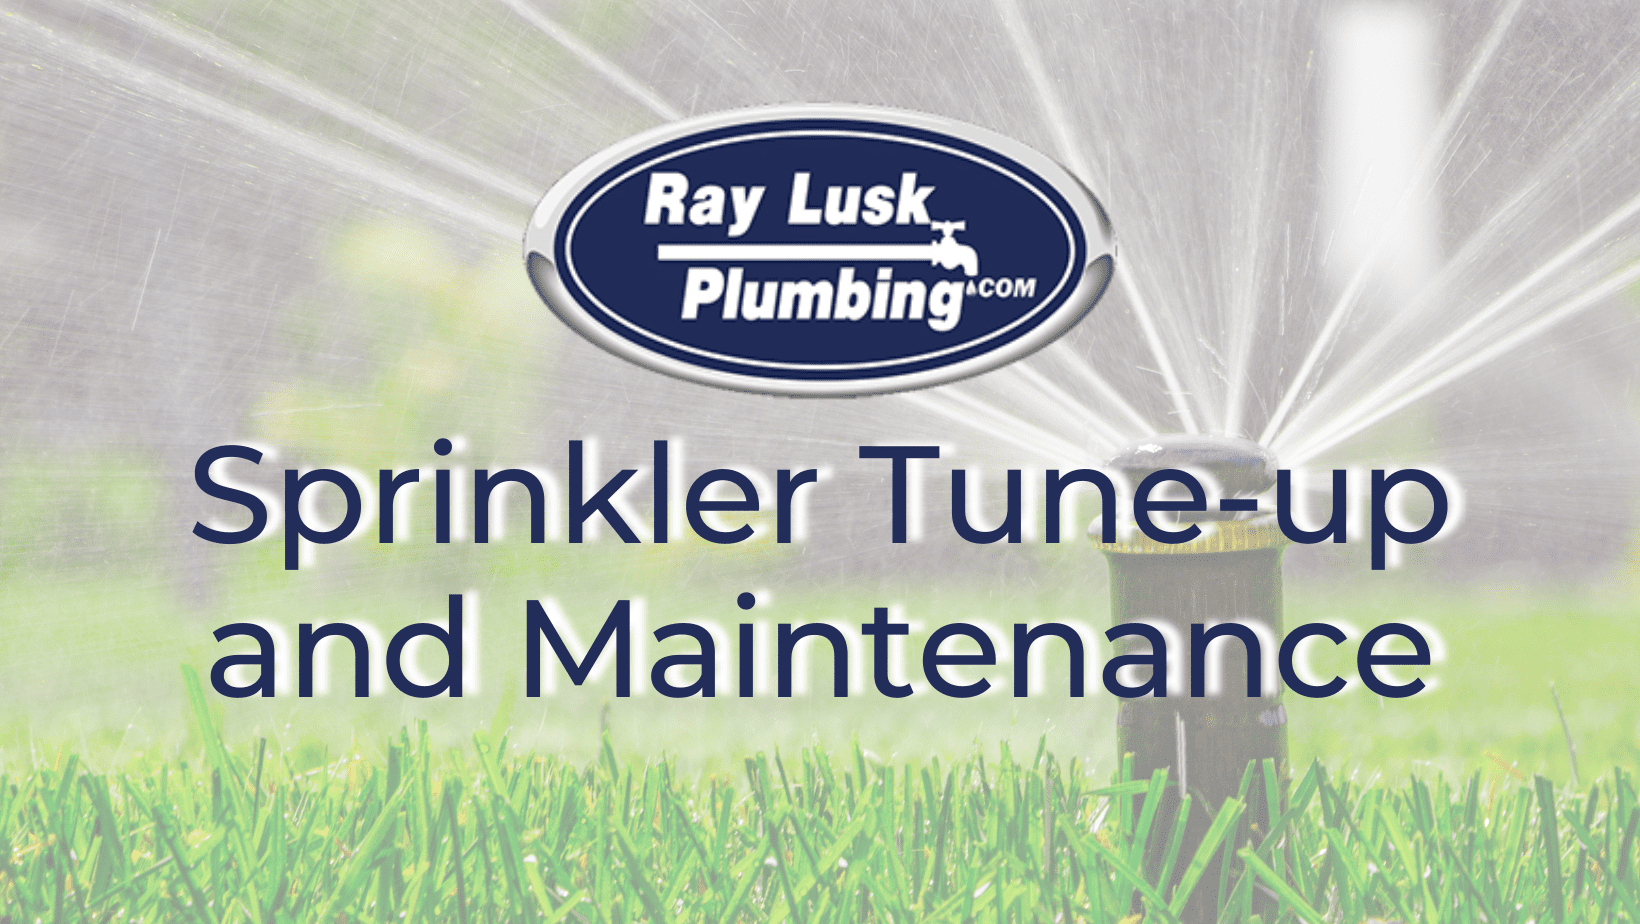 """Image text reads: """"Sprinkler Tune-Up and Maintenance"""""""